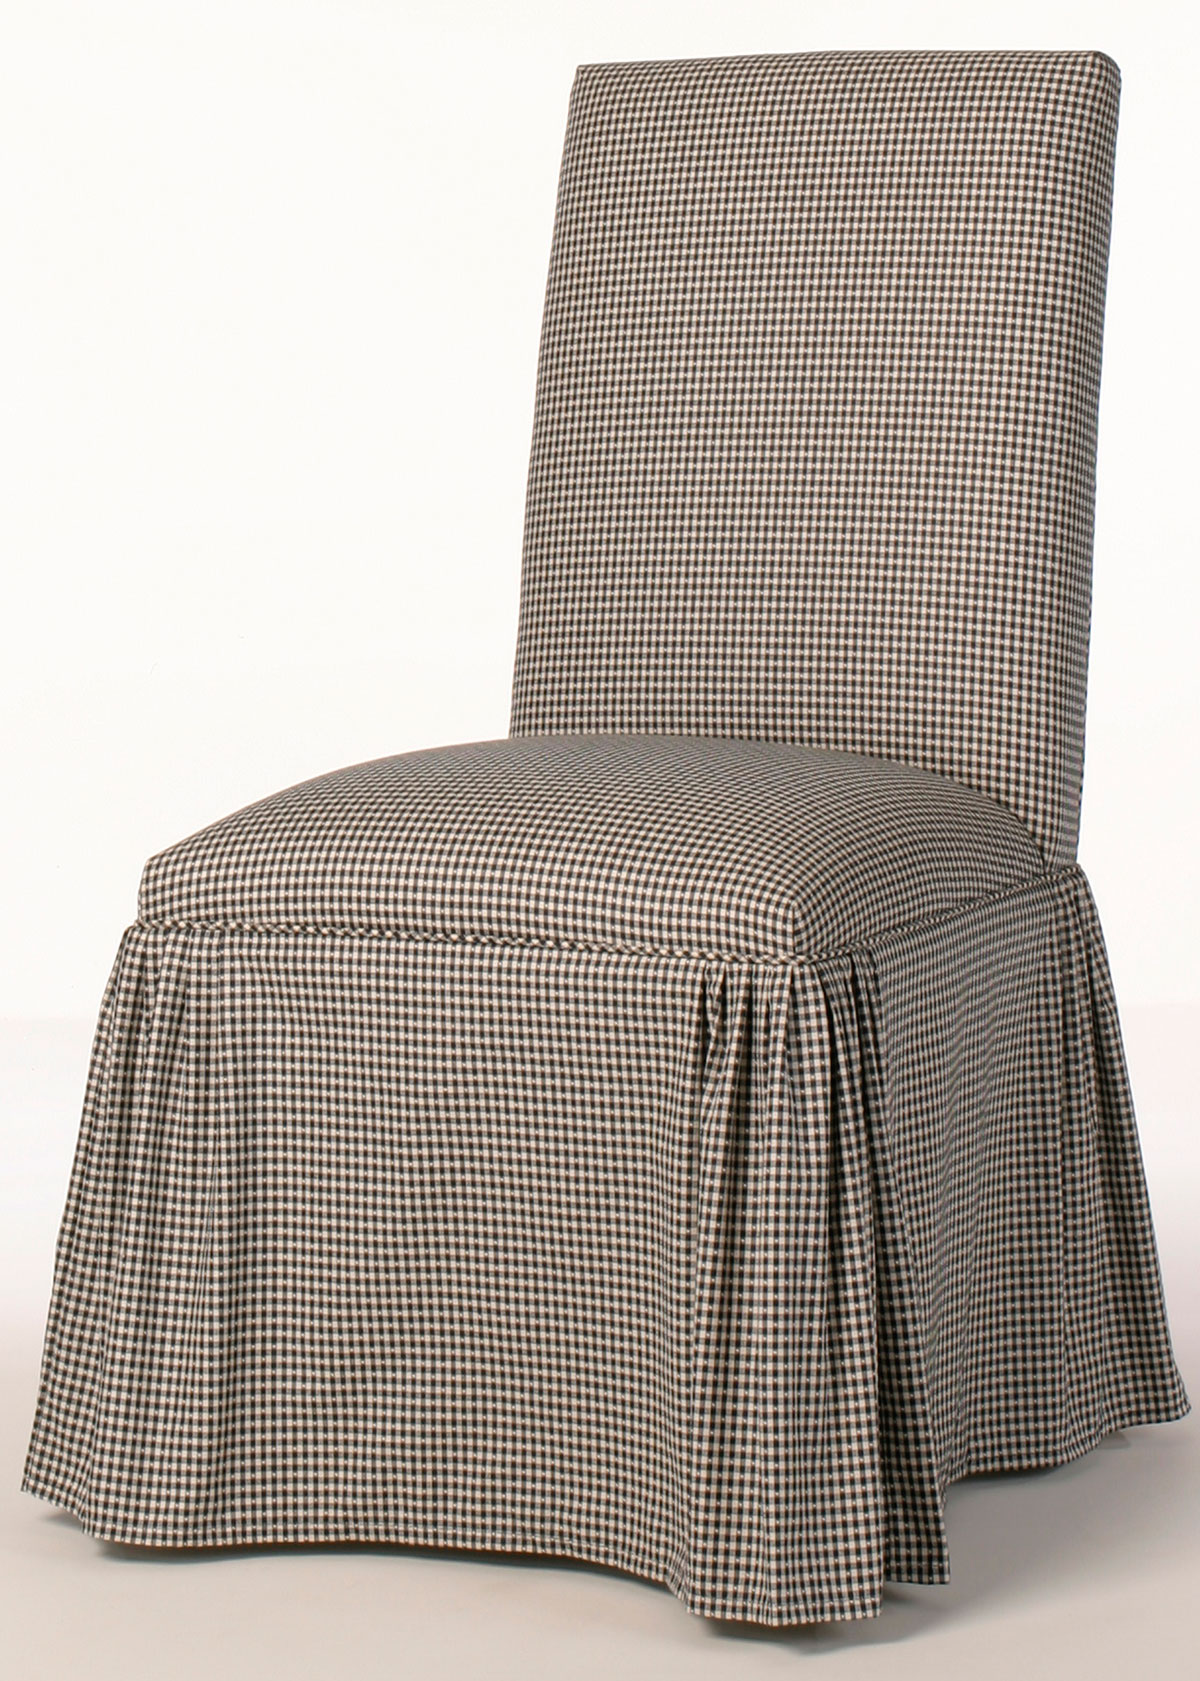 parsons chairs with skirt chameleon chair covers yeovil straight back ruffled pleat